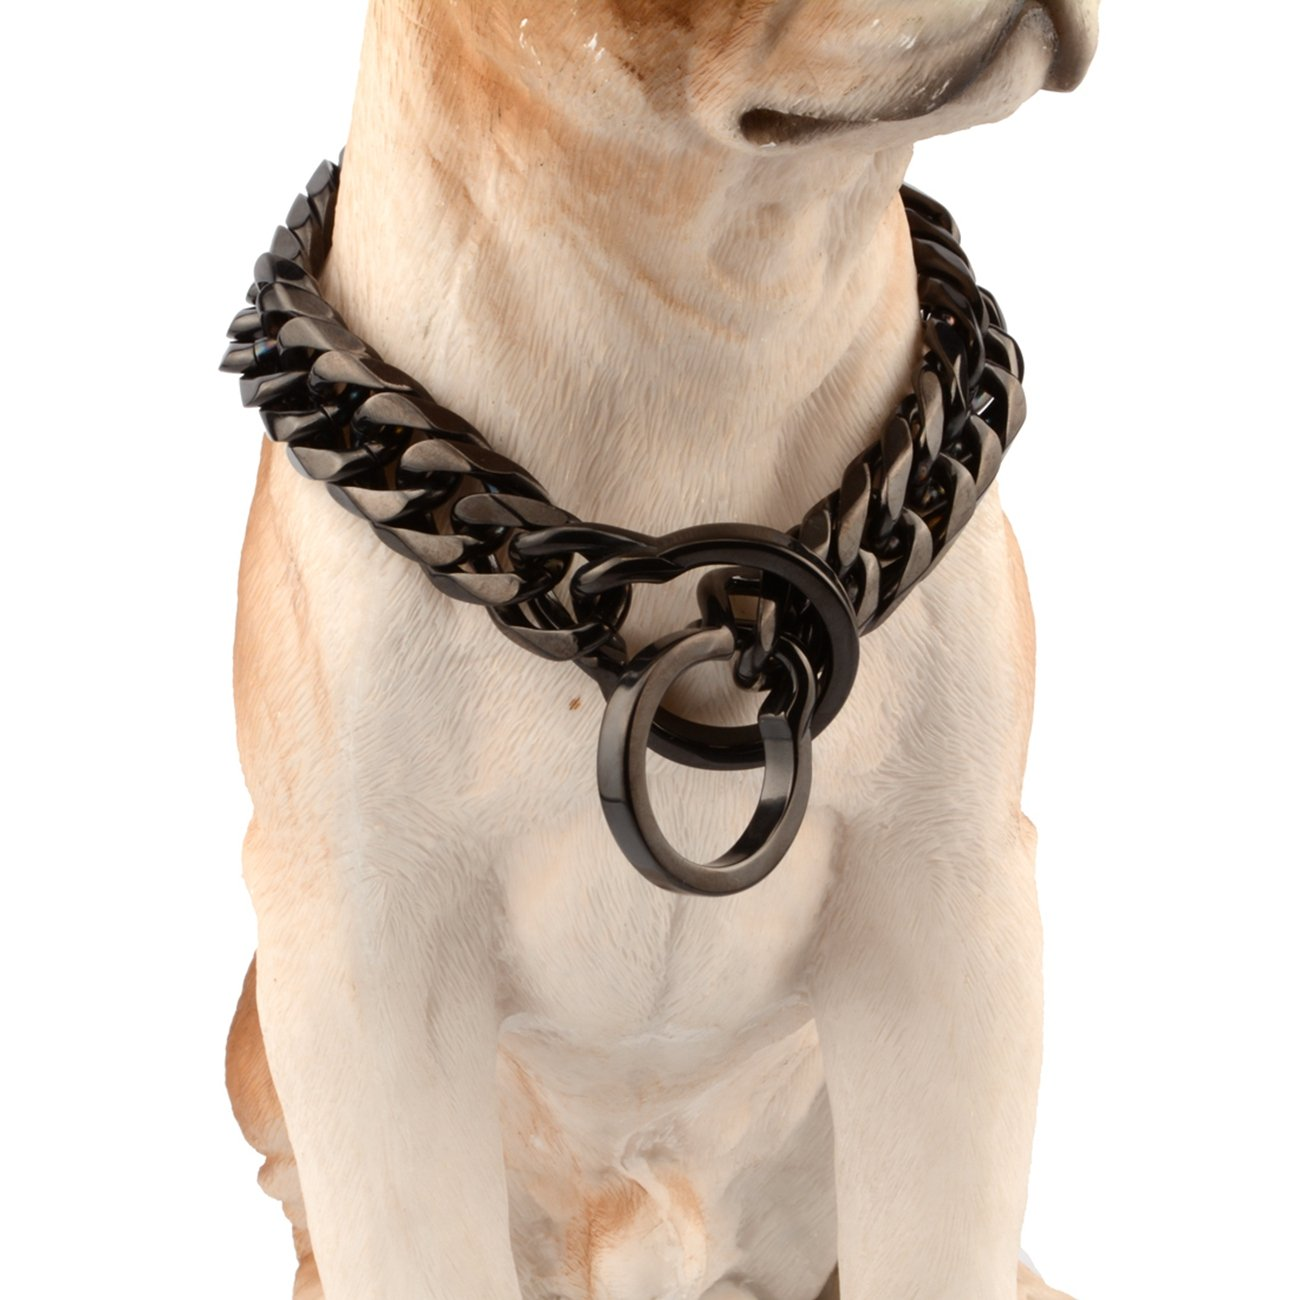 14inch recommend dog's neck 10inch Innovative jewelry 16mm Black Solid Stainless Steel Pet Dog Choke Chain Collar Pit Bull,Bulldog, Big Breeds 14-34inches(14 )